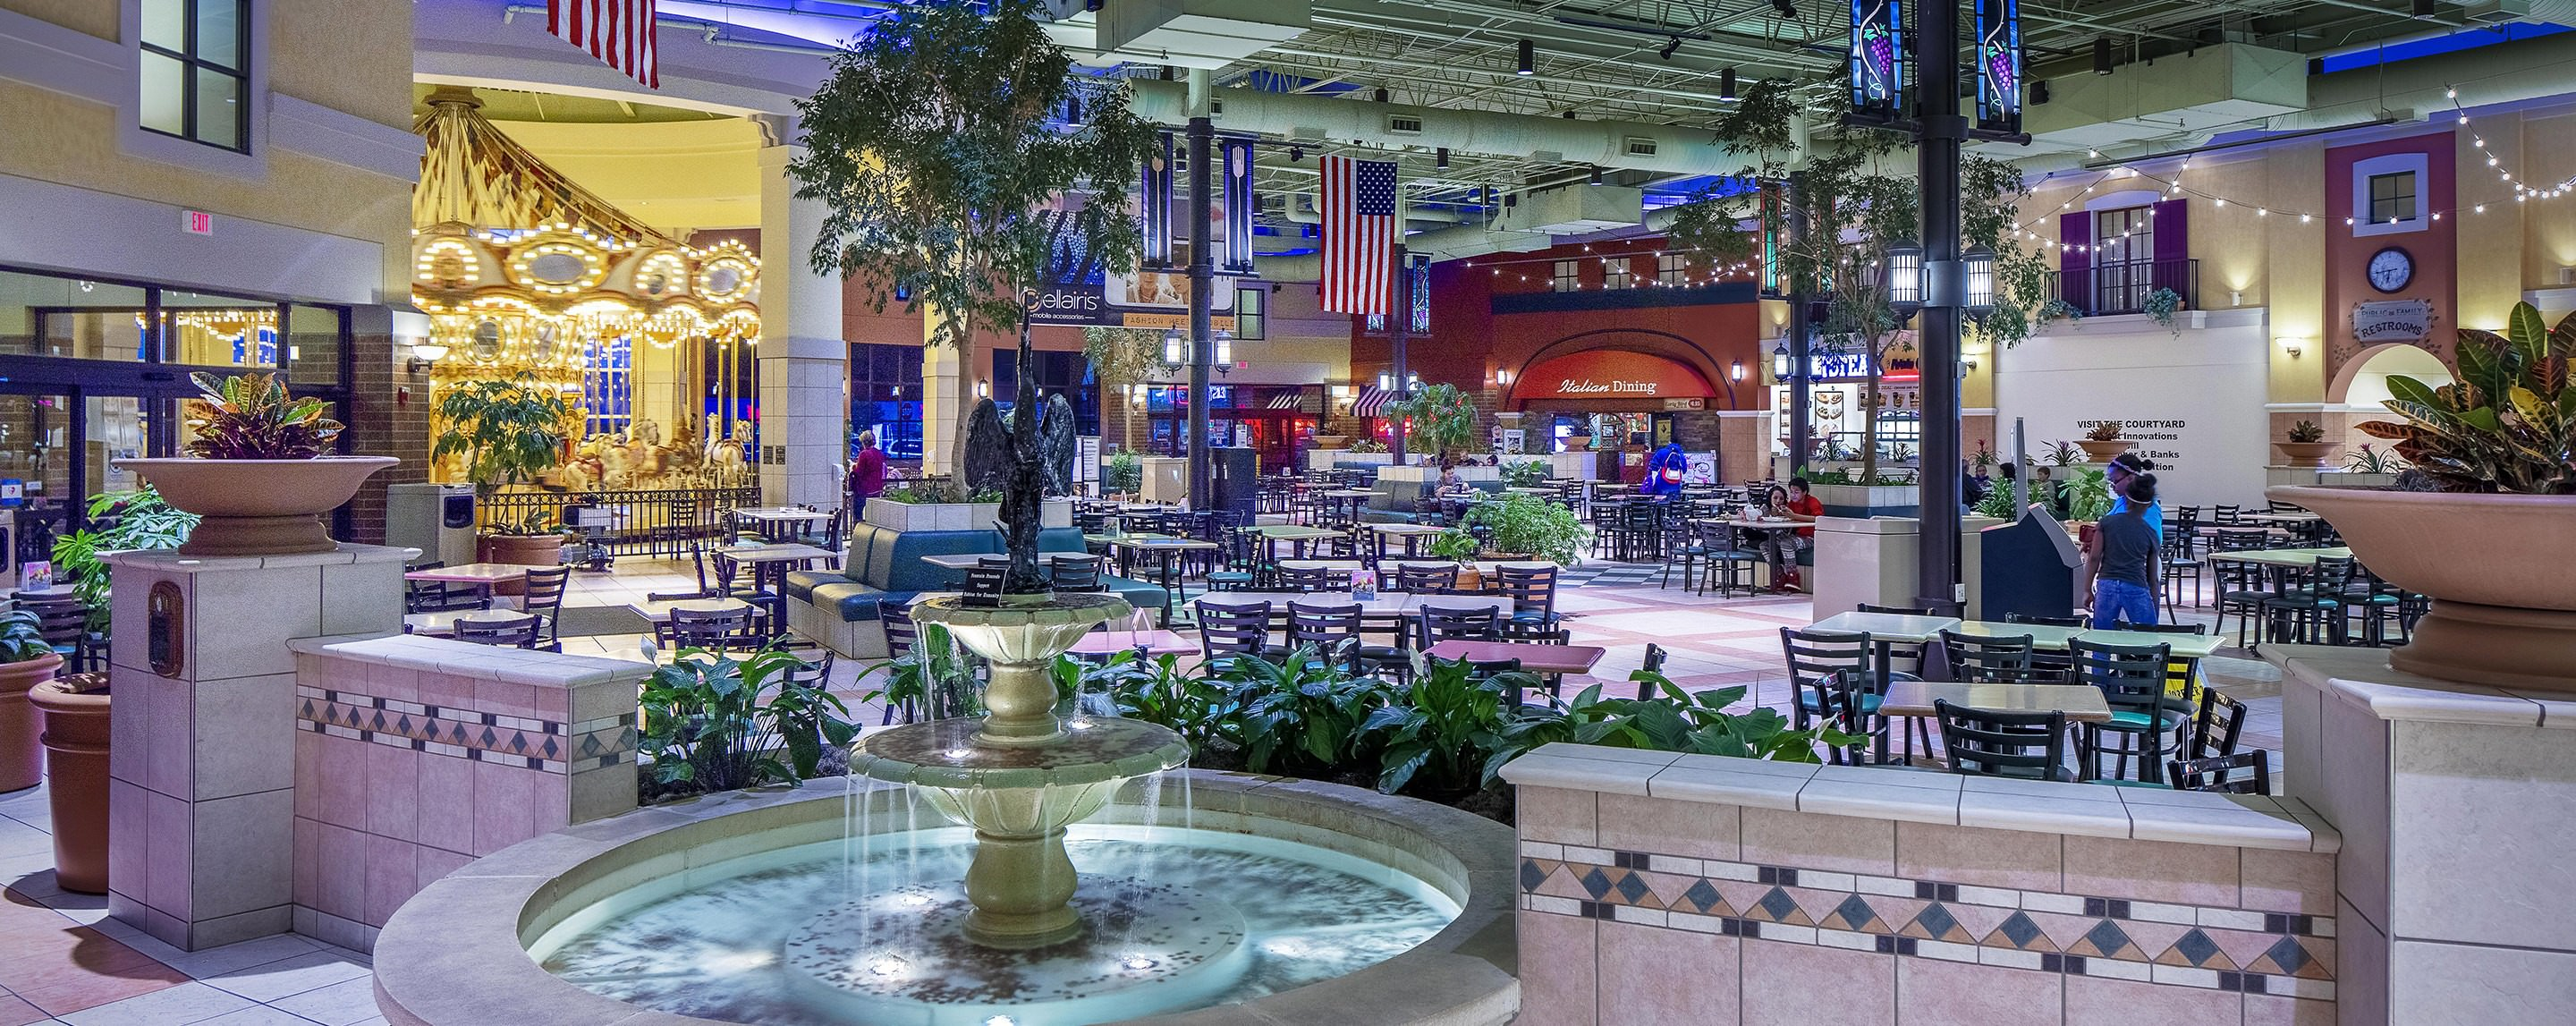 Find the best Shopping malls, around Urbana,IL and get detailed driving directions with road conditions, live traffic updates, and reviews of local business along the way.